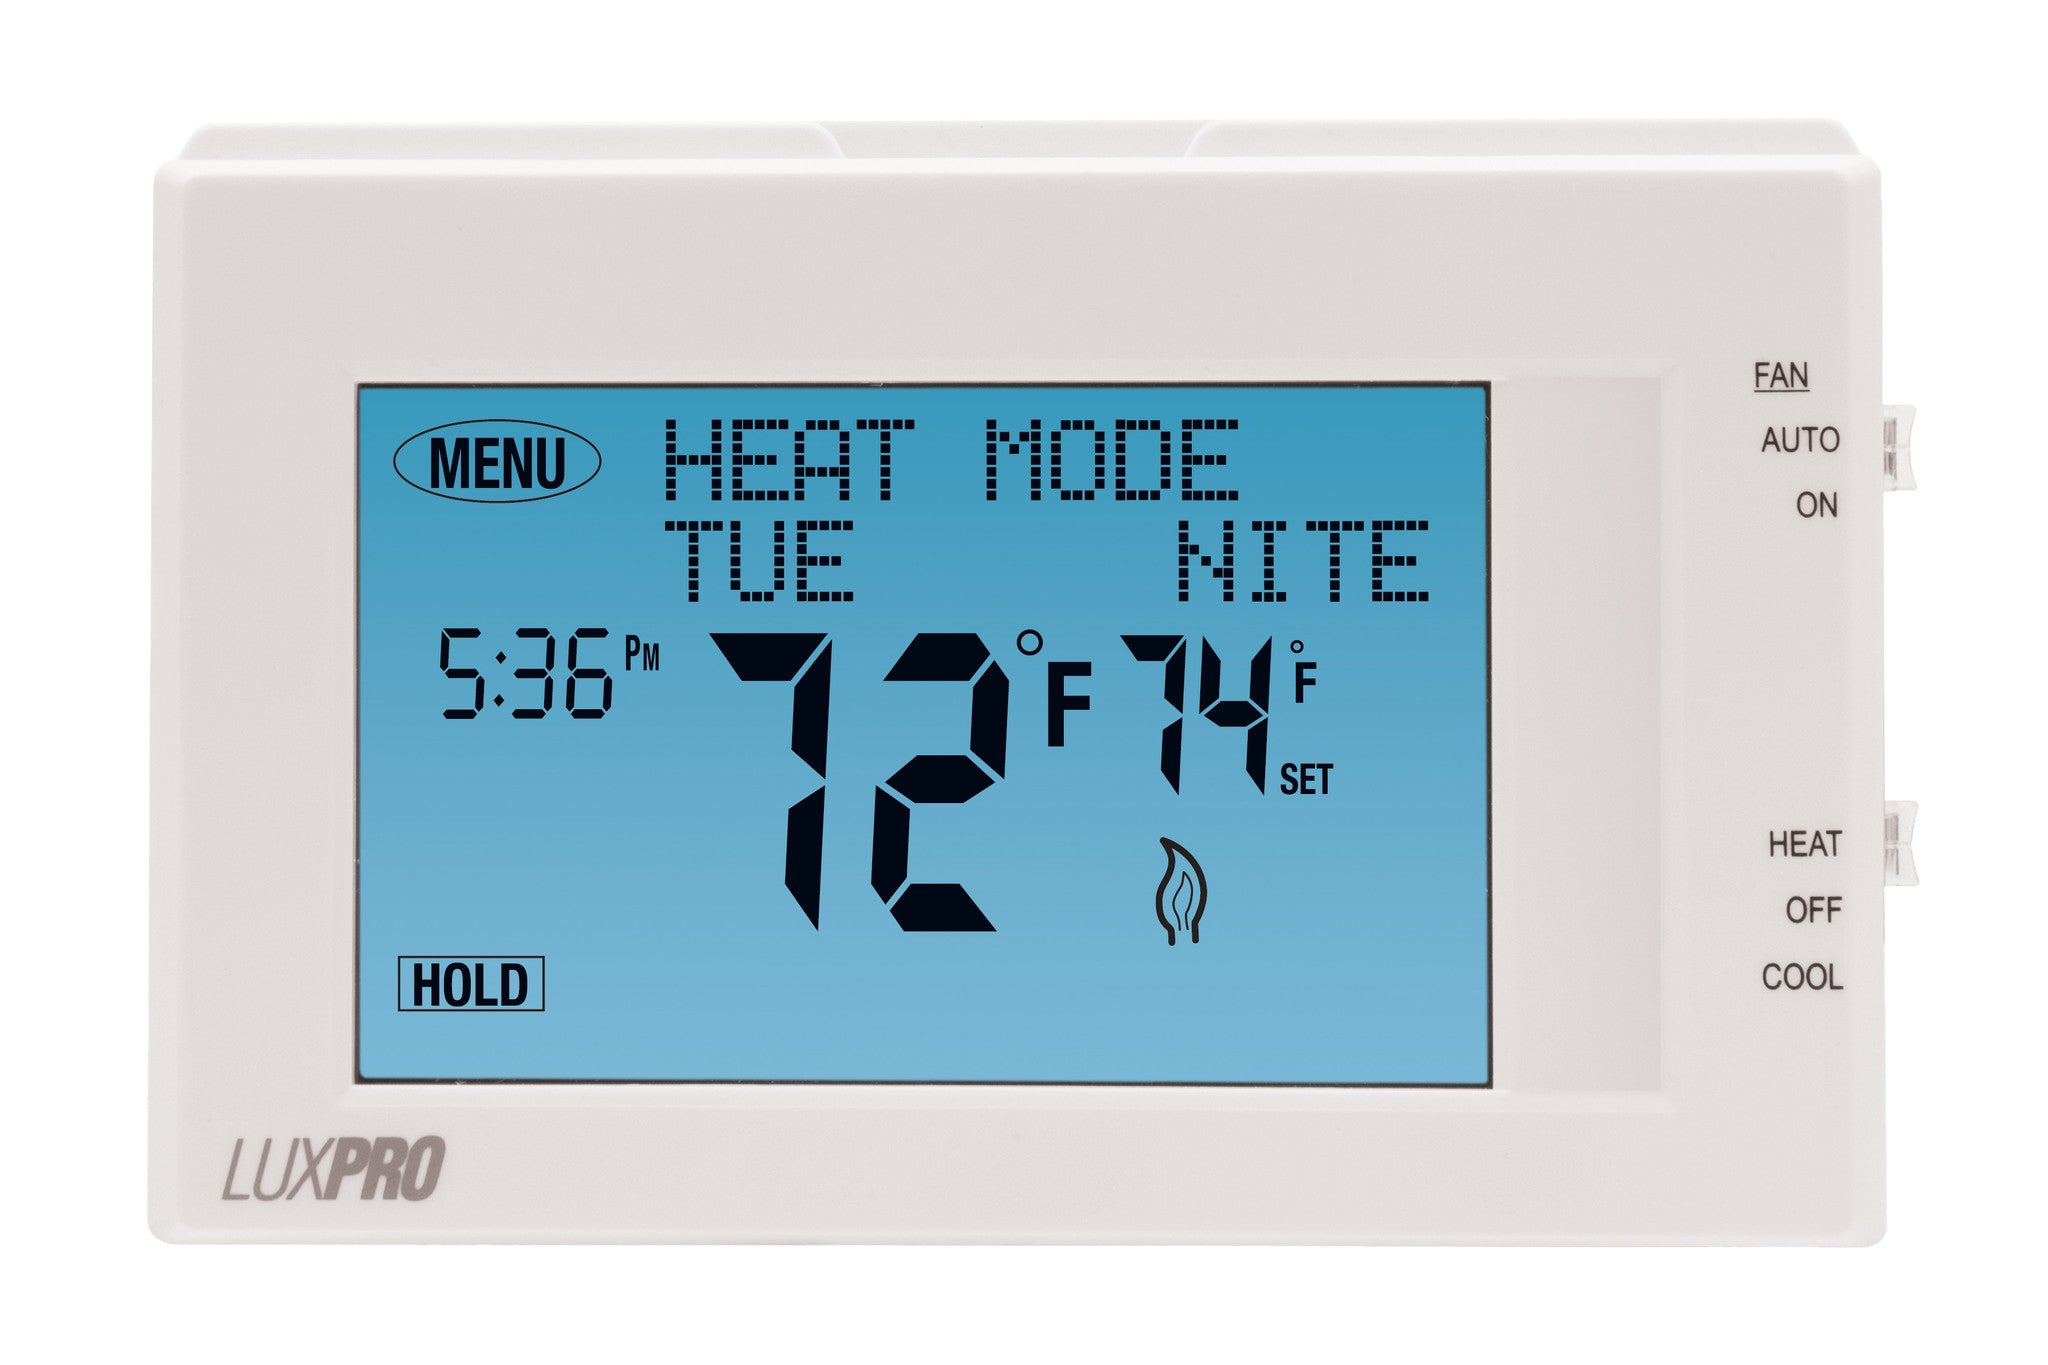 LuxPro P721UT PROGRAMMABLE THERMOSTAT, 7 DAY PROGRAMMABLE MULTI-STAGE  TOUCHSCREEN (2 HEAT - 1 COOL)